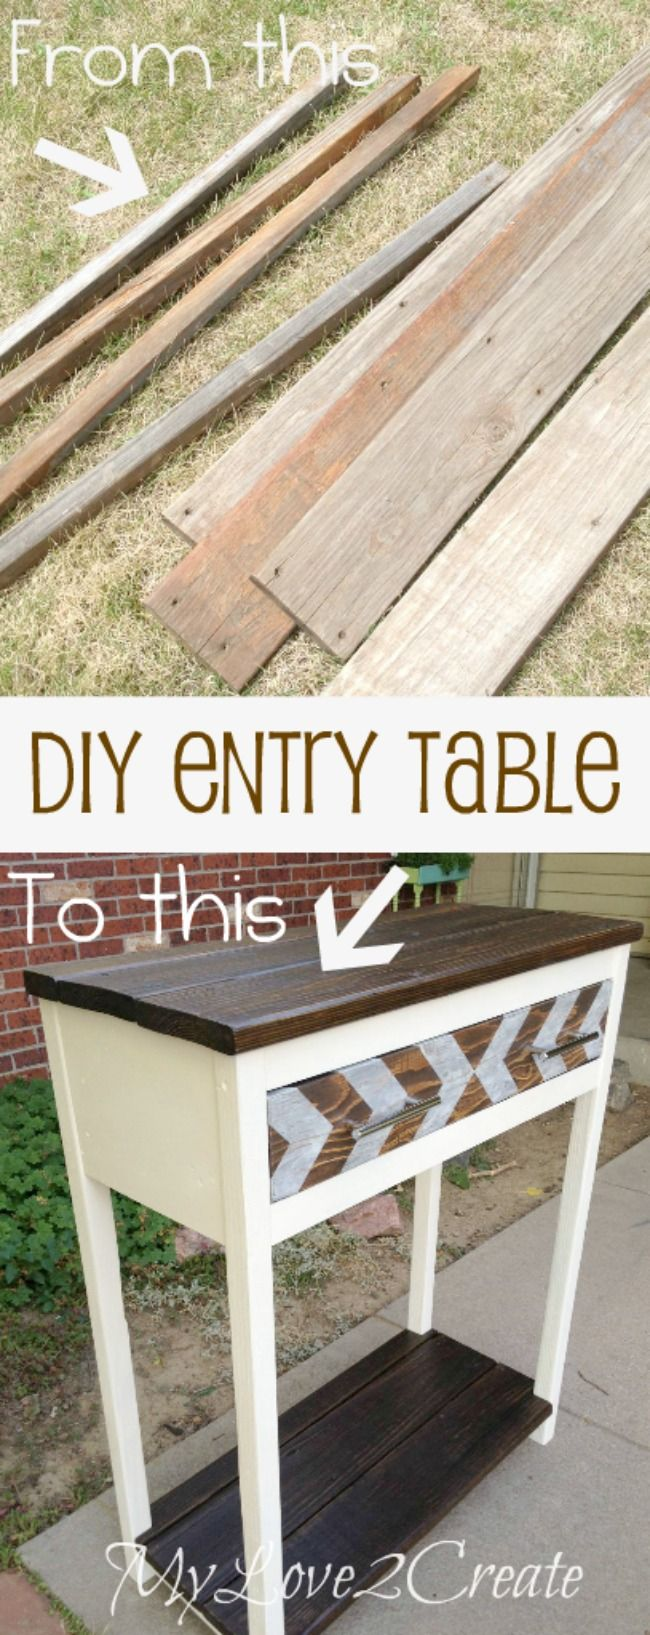 My Love 2 Create uses scrap wood and reclaimed lumber to make a unique and useful one of a kind DIY entry table.